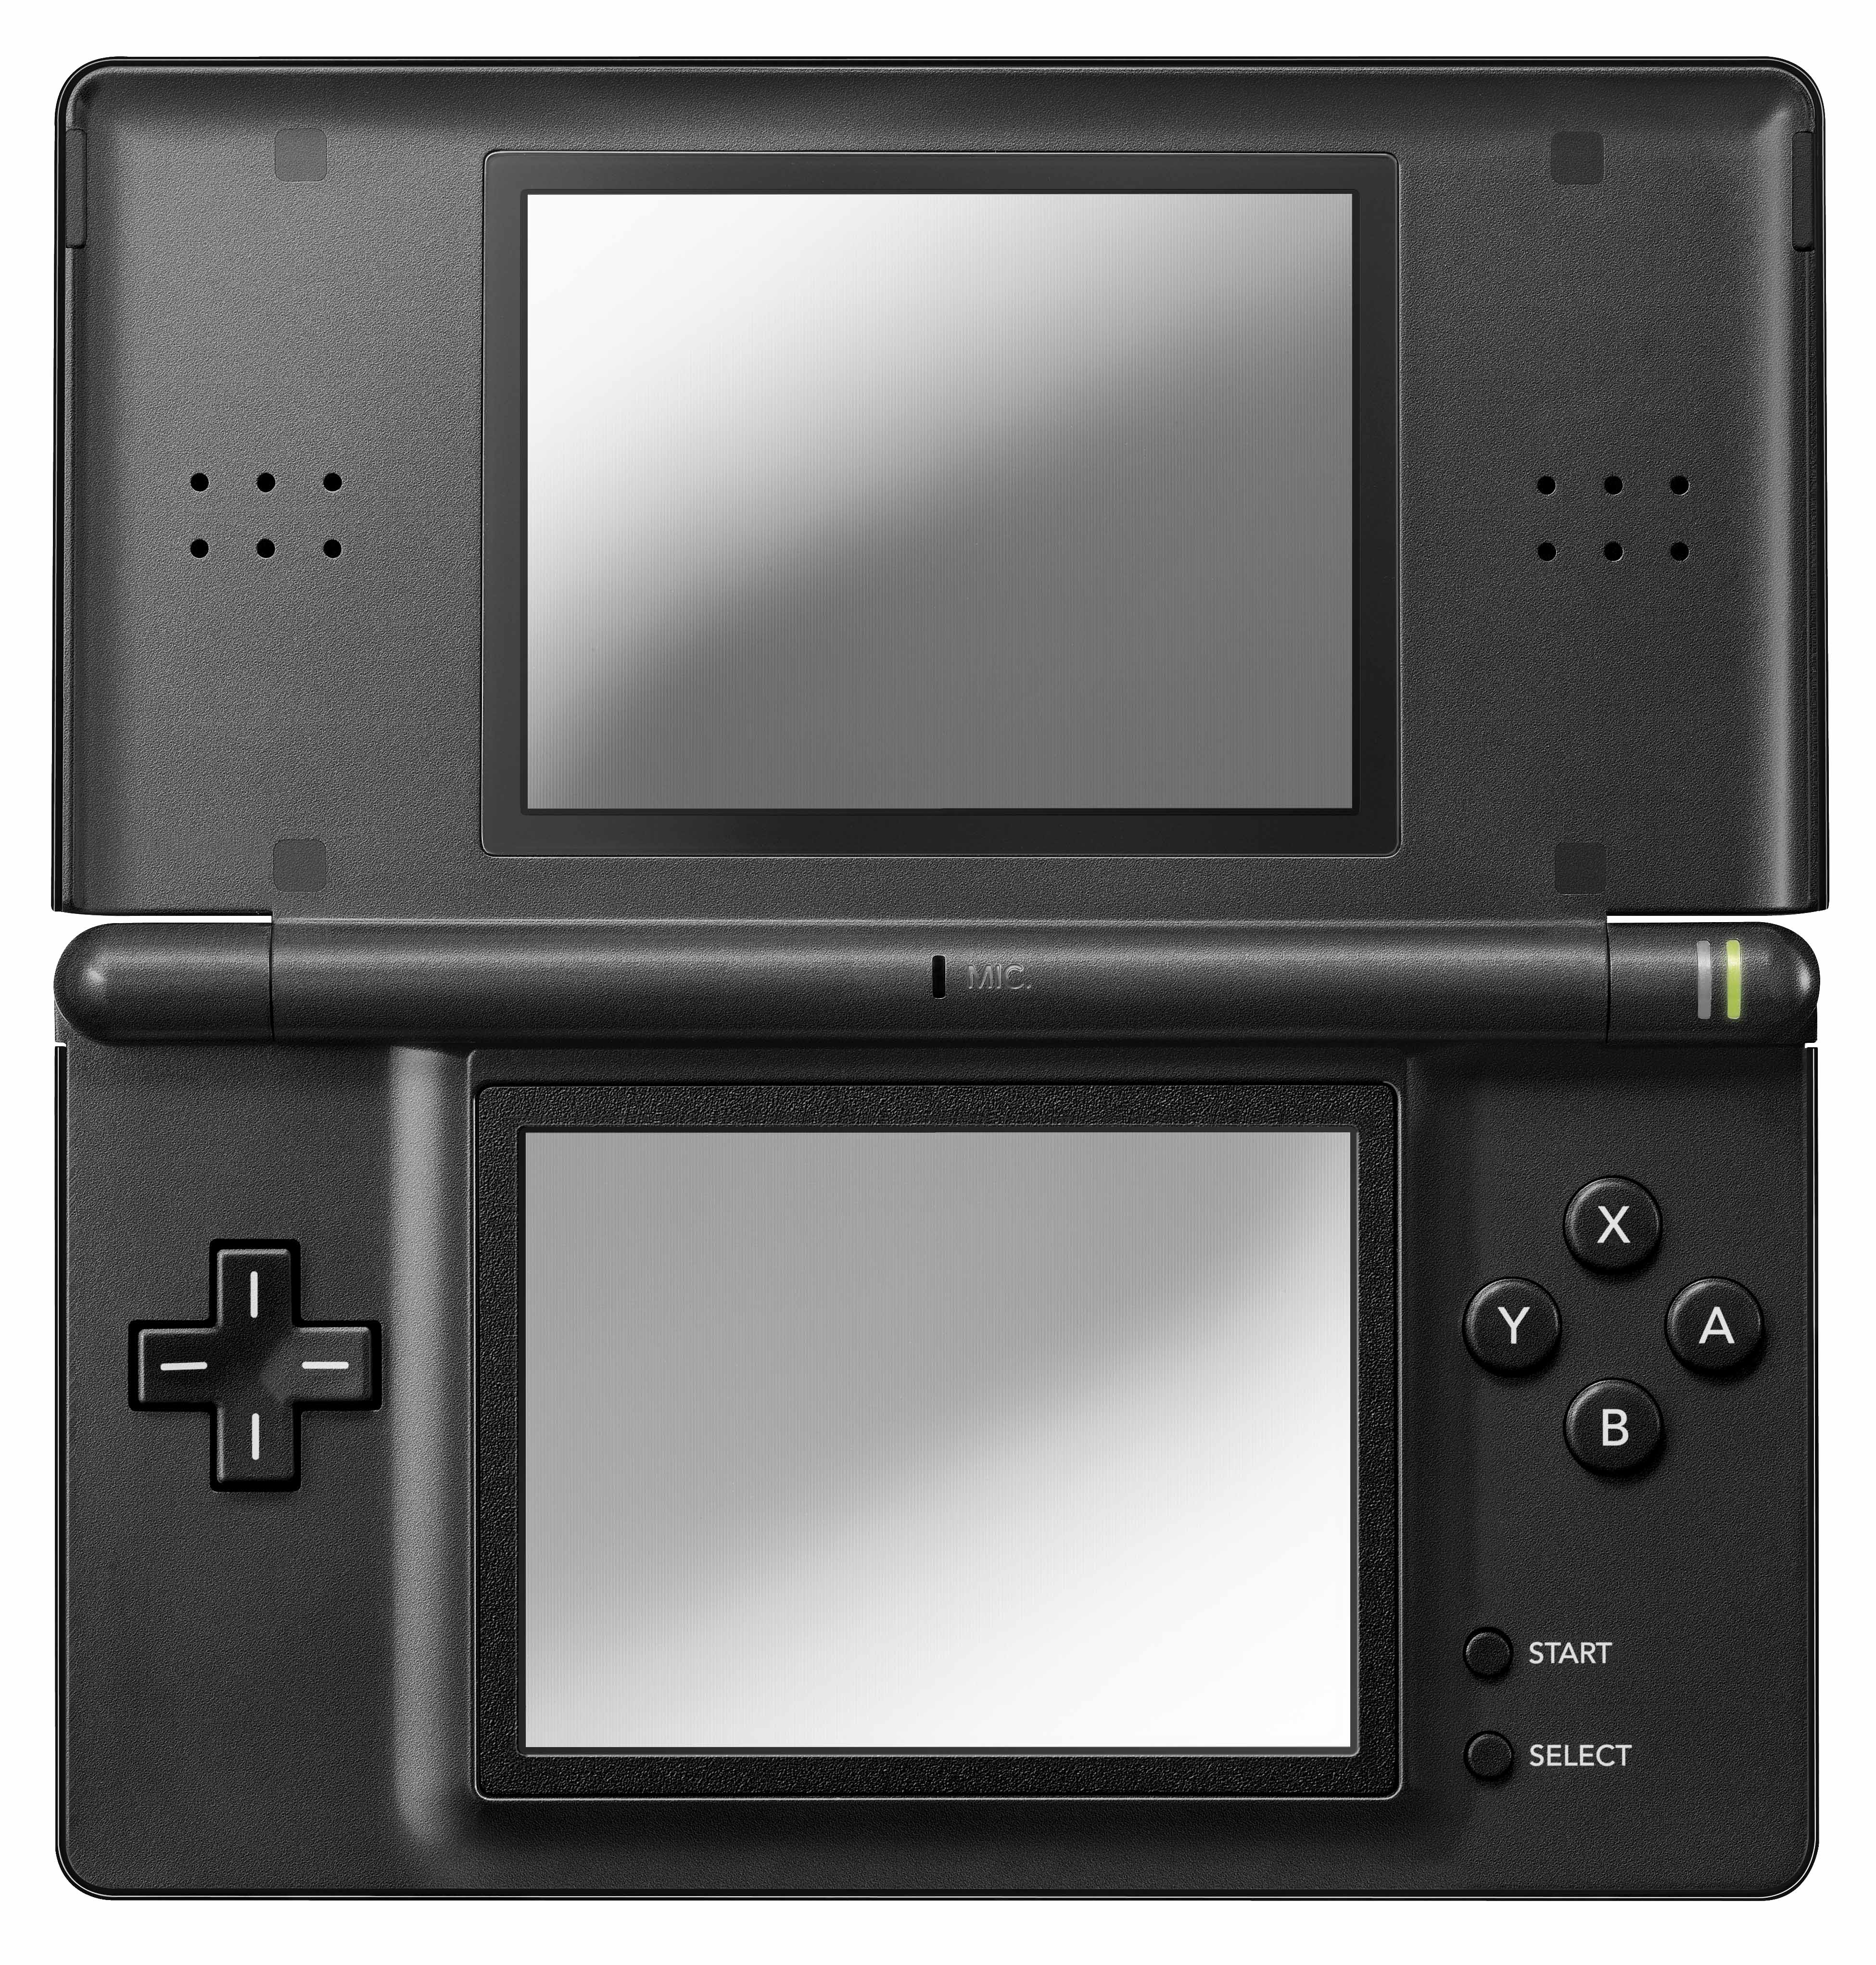 Nintendo DS will soon be the best selling console of all time